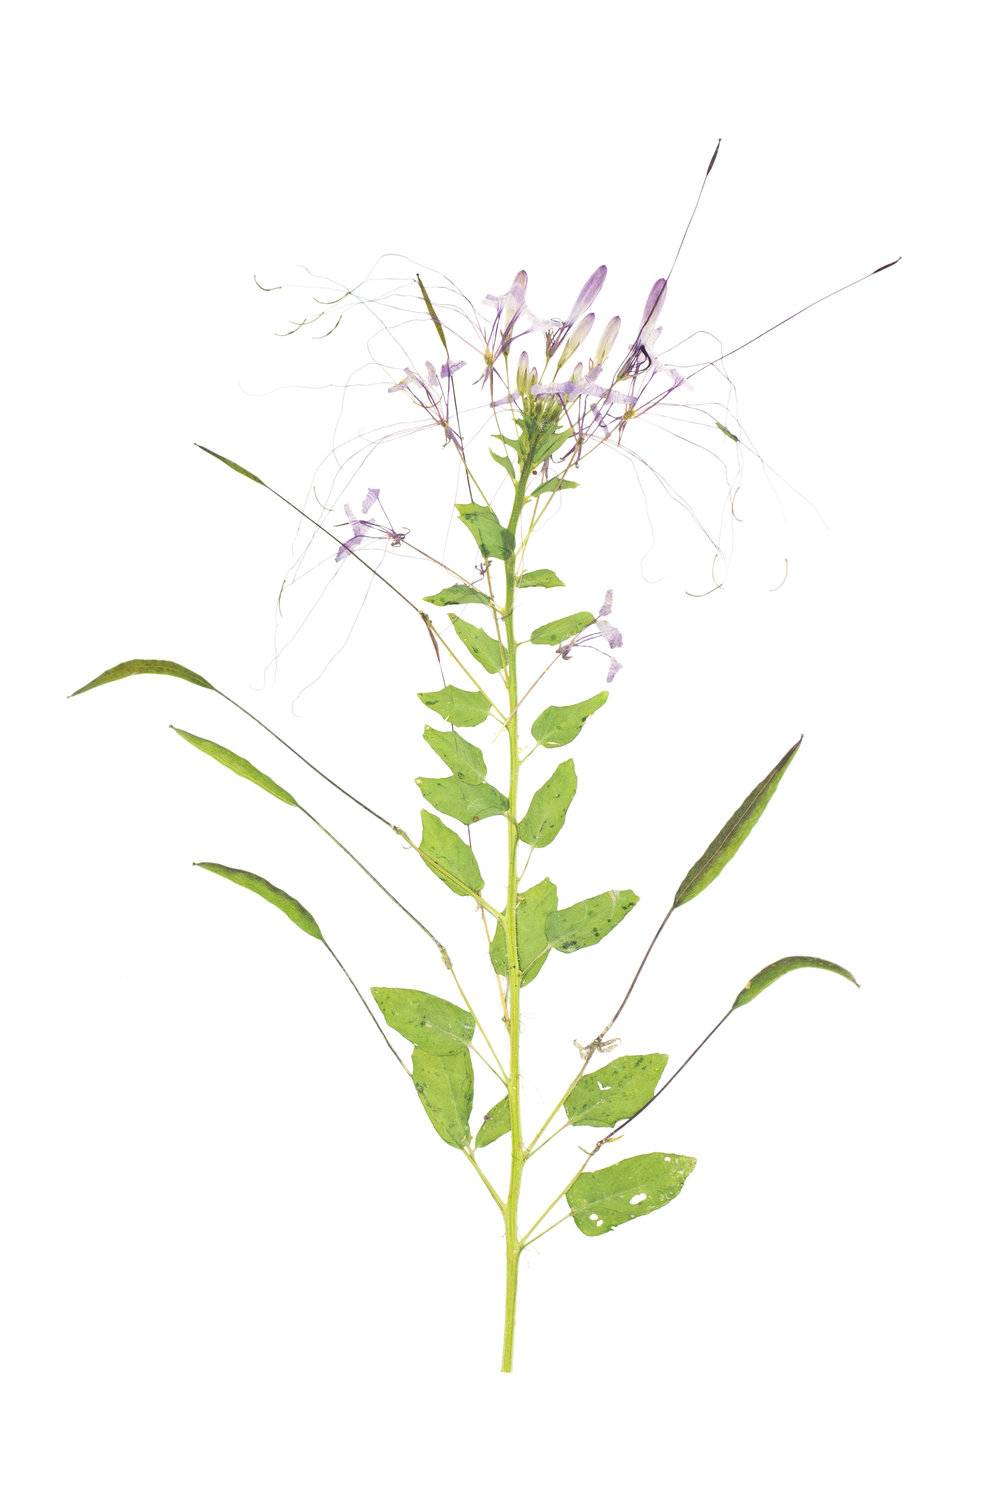 New! Spider Flower / Cleome hassleriana